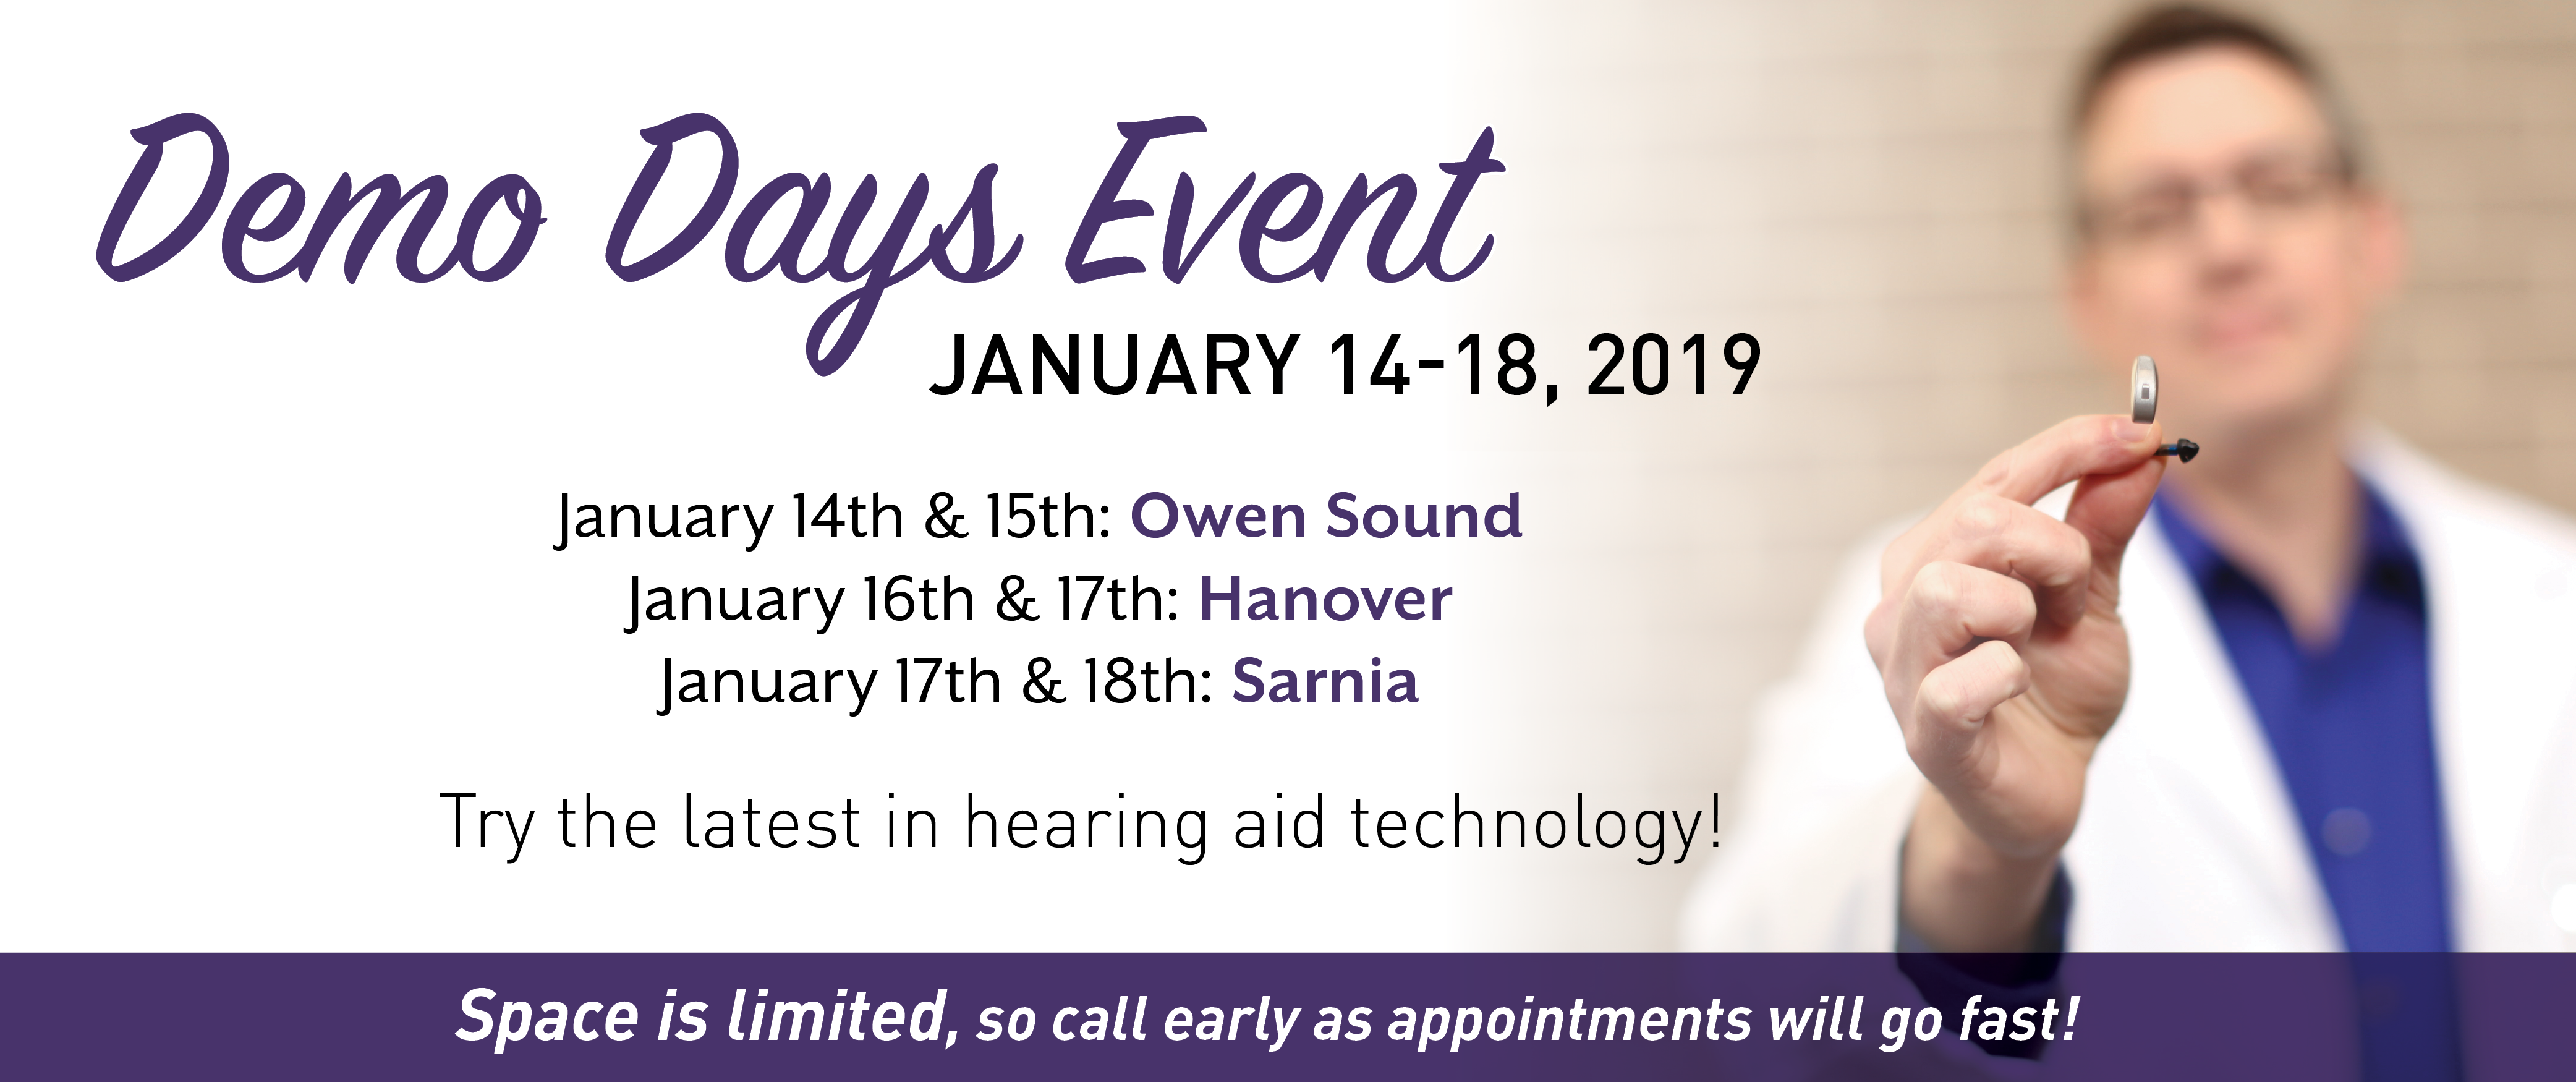 Demo Days event January 14-18, 2019 try the latest in hearing aid technology